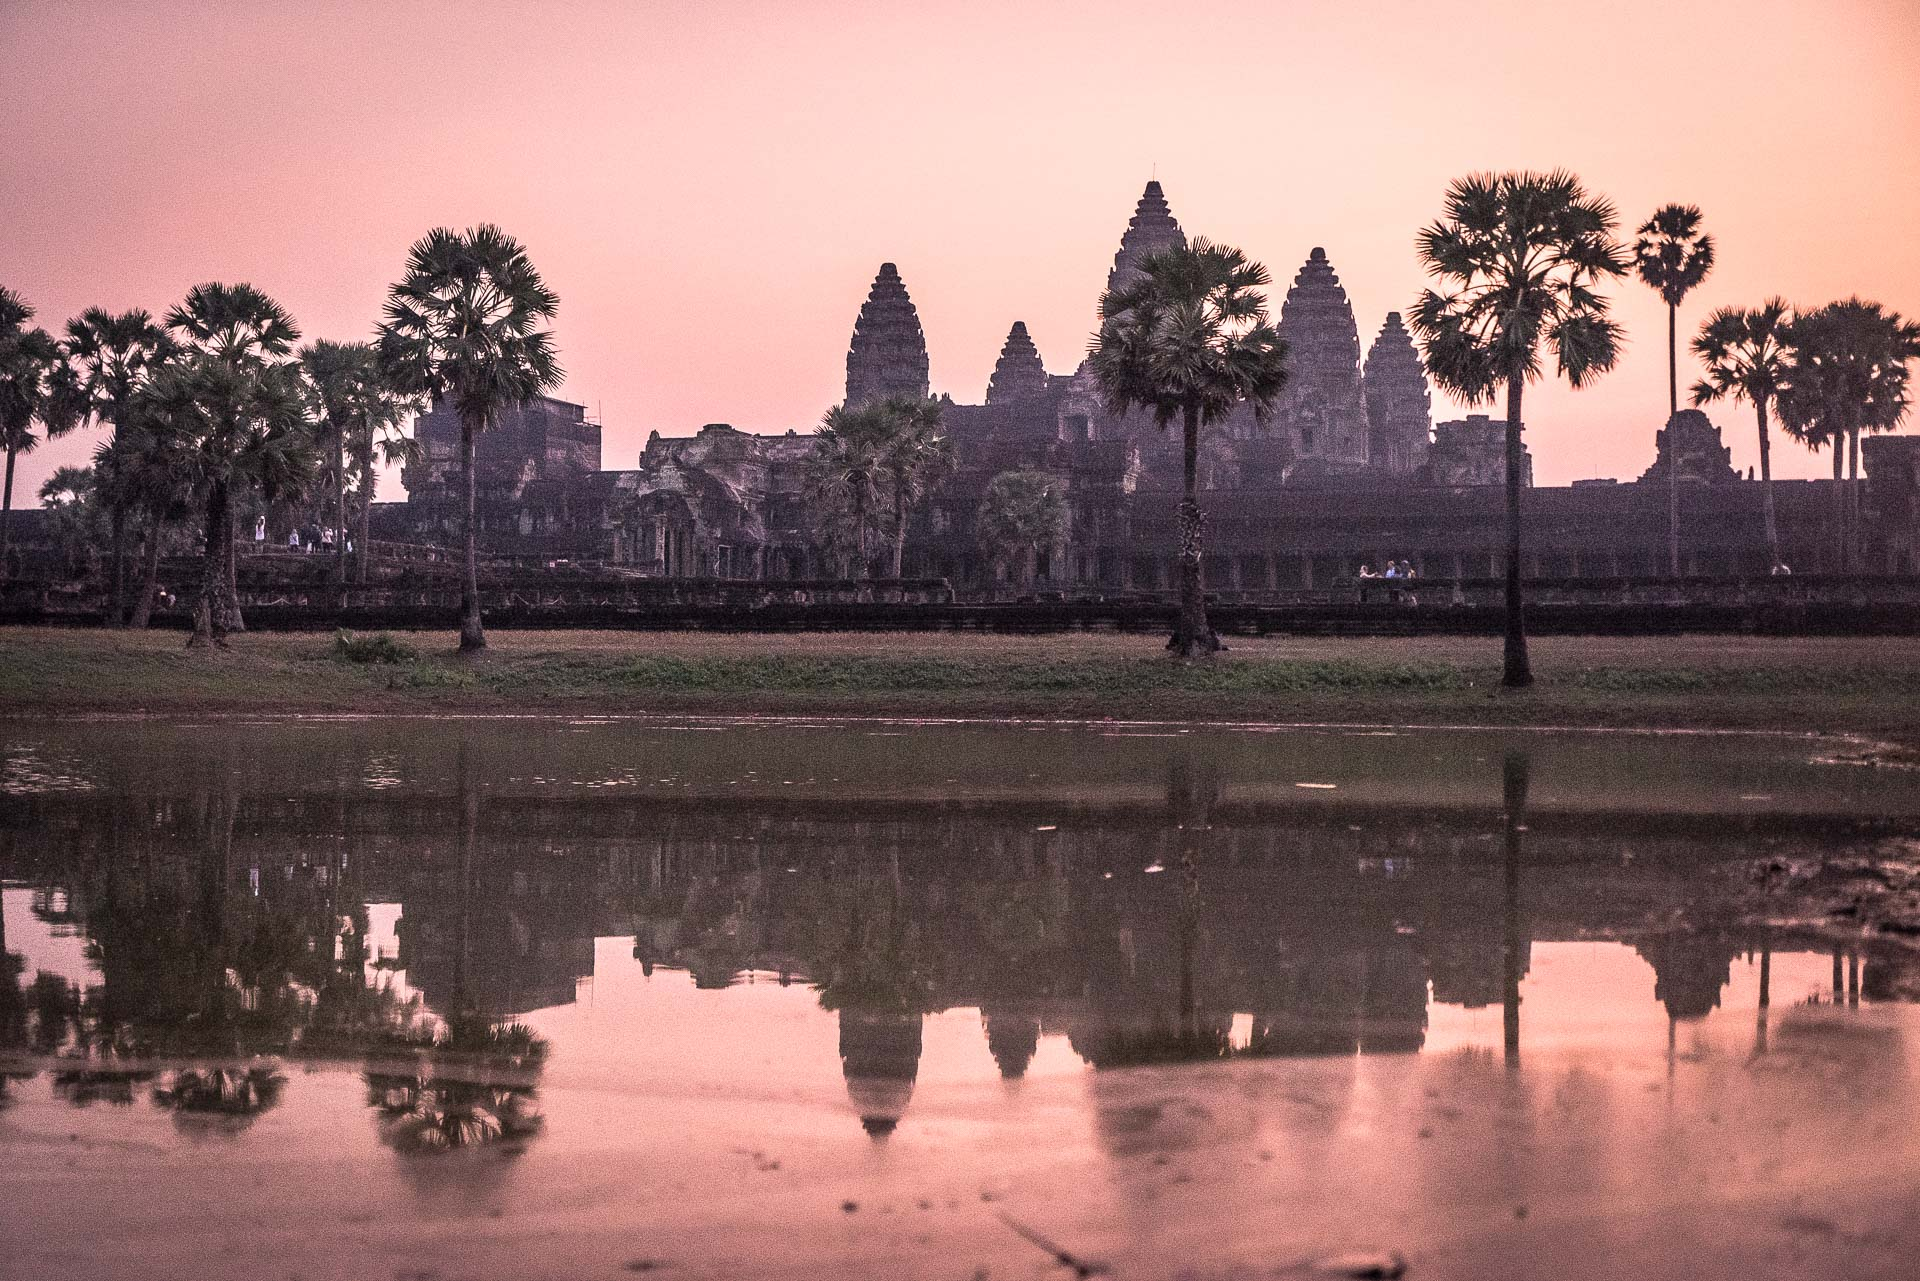 Lesvoyageuses-guide-voyage-Siem-reap-angkor-temples-Cambodge-21